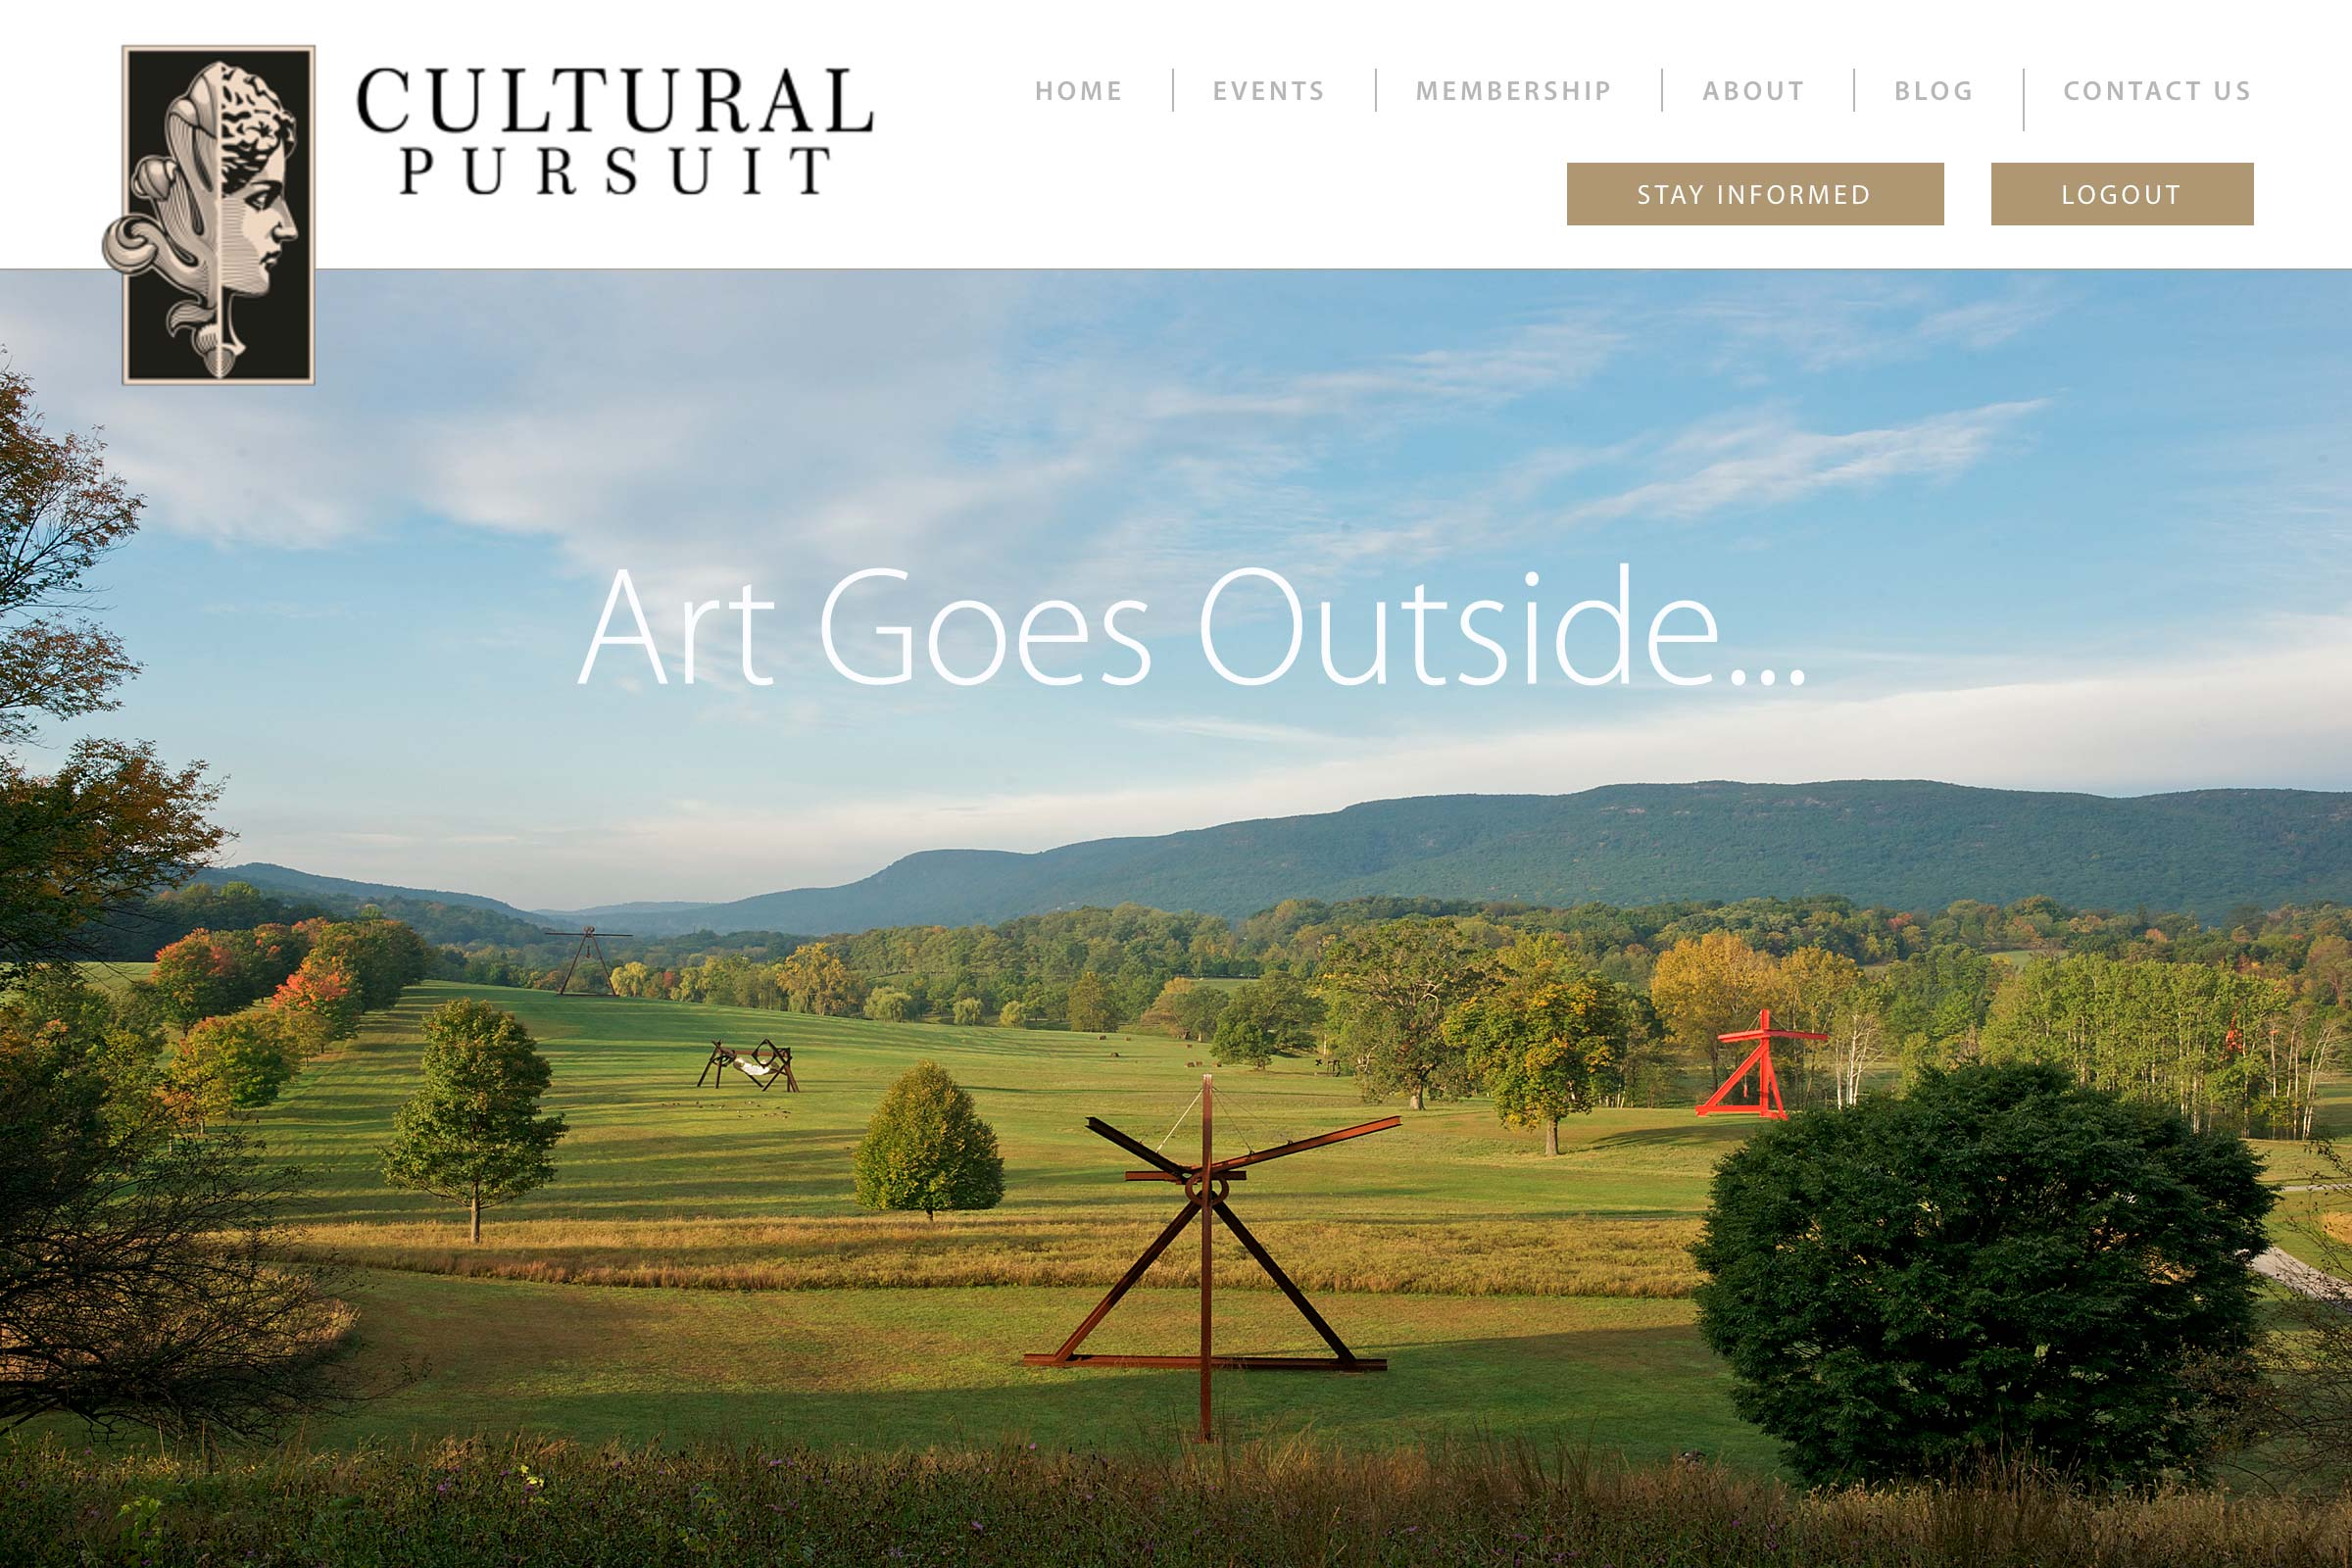 Home page of Cultural Pursuit website